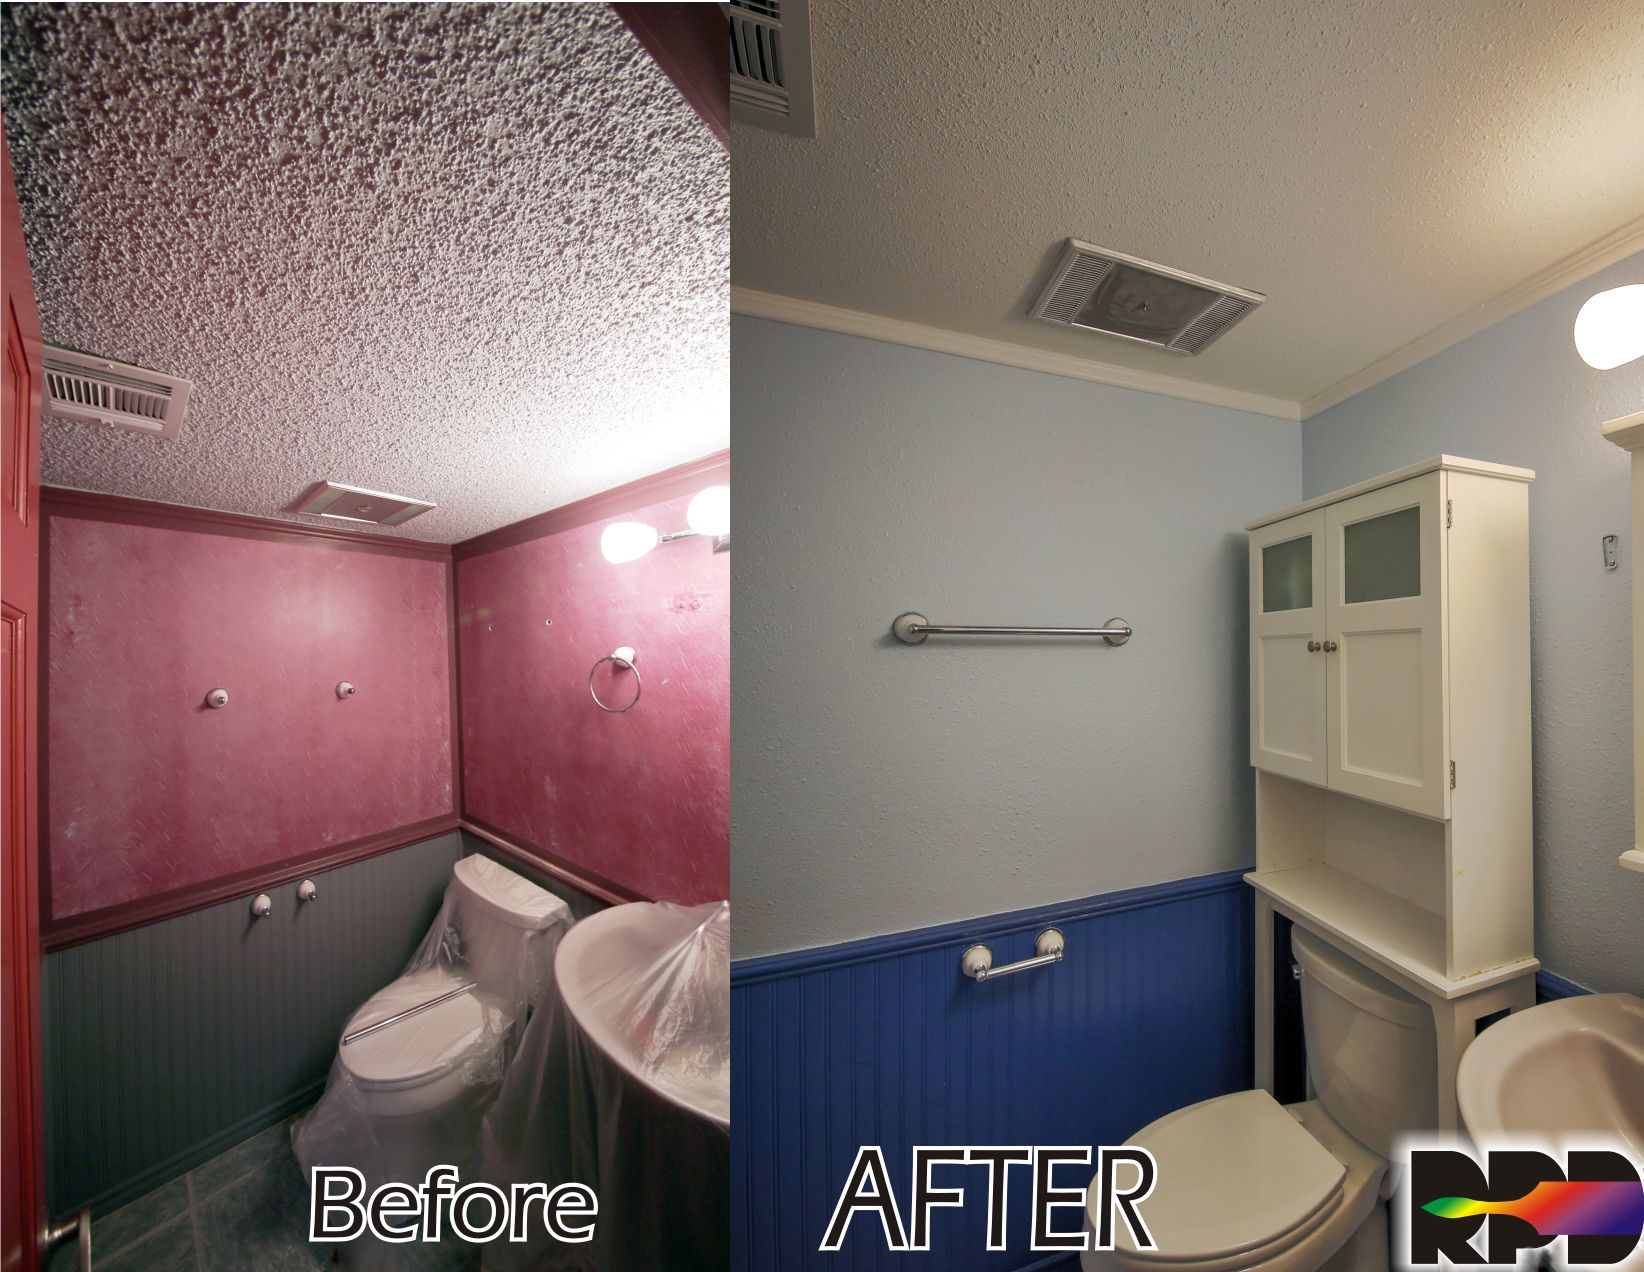 Small Bathroom Ceiling Paint : Modernized and refreshed small bathroom by removing